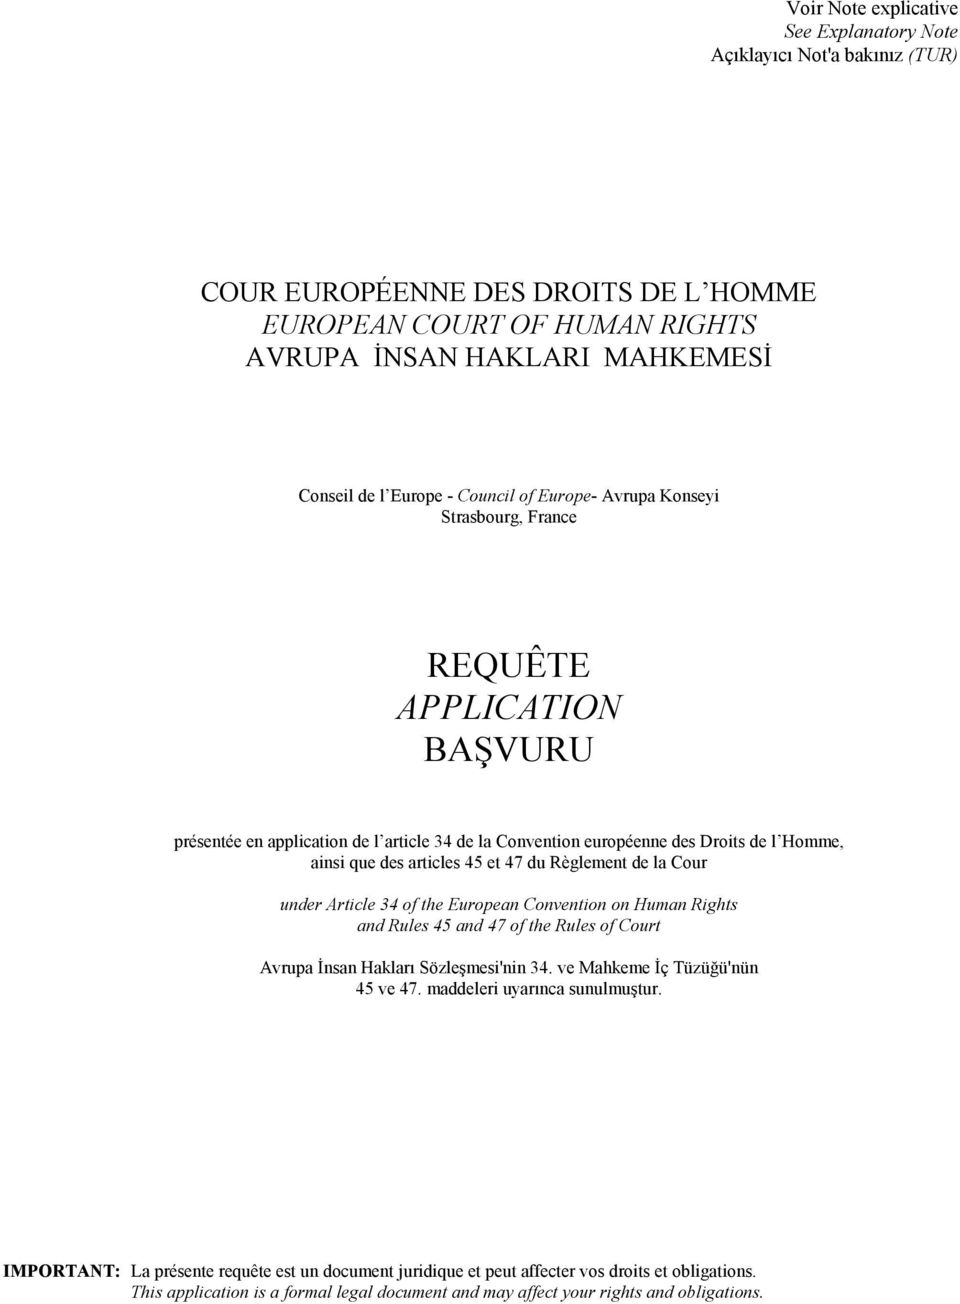 et 47 du Règlement de la Cour under Article 34 of the European Convention on Human Rights and Rules 45 and 47 of the Rules of Court Avrupa İnsan Haklarõ Sözleşmesi'nin 34.